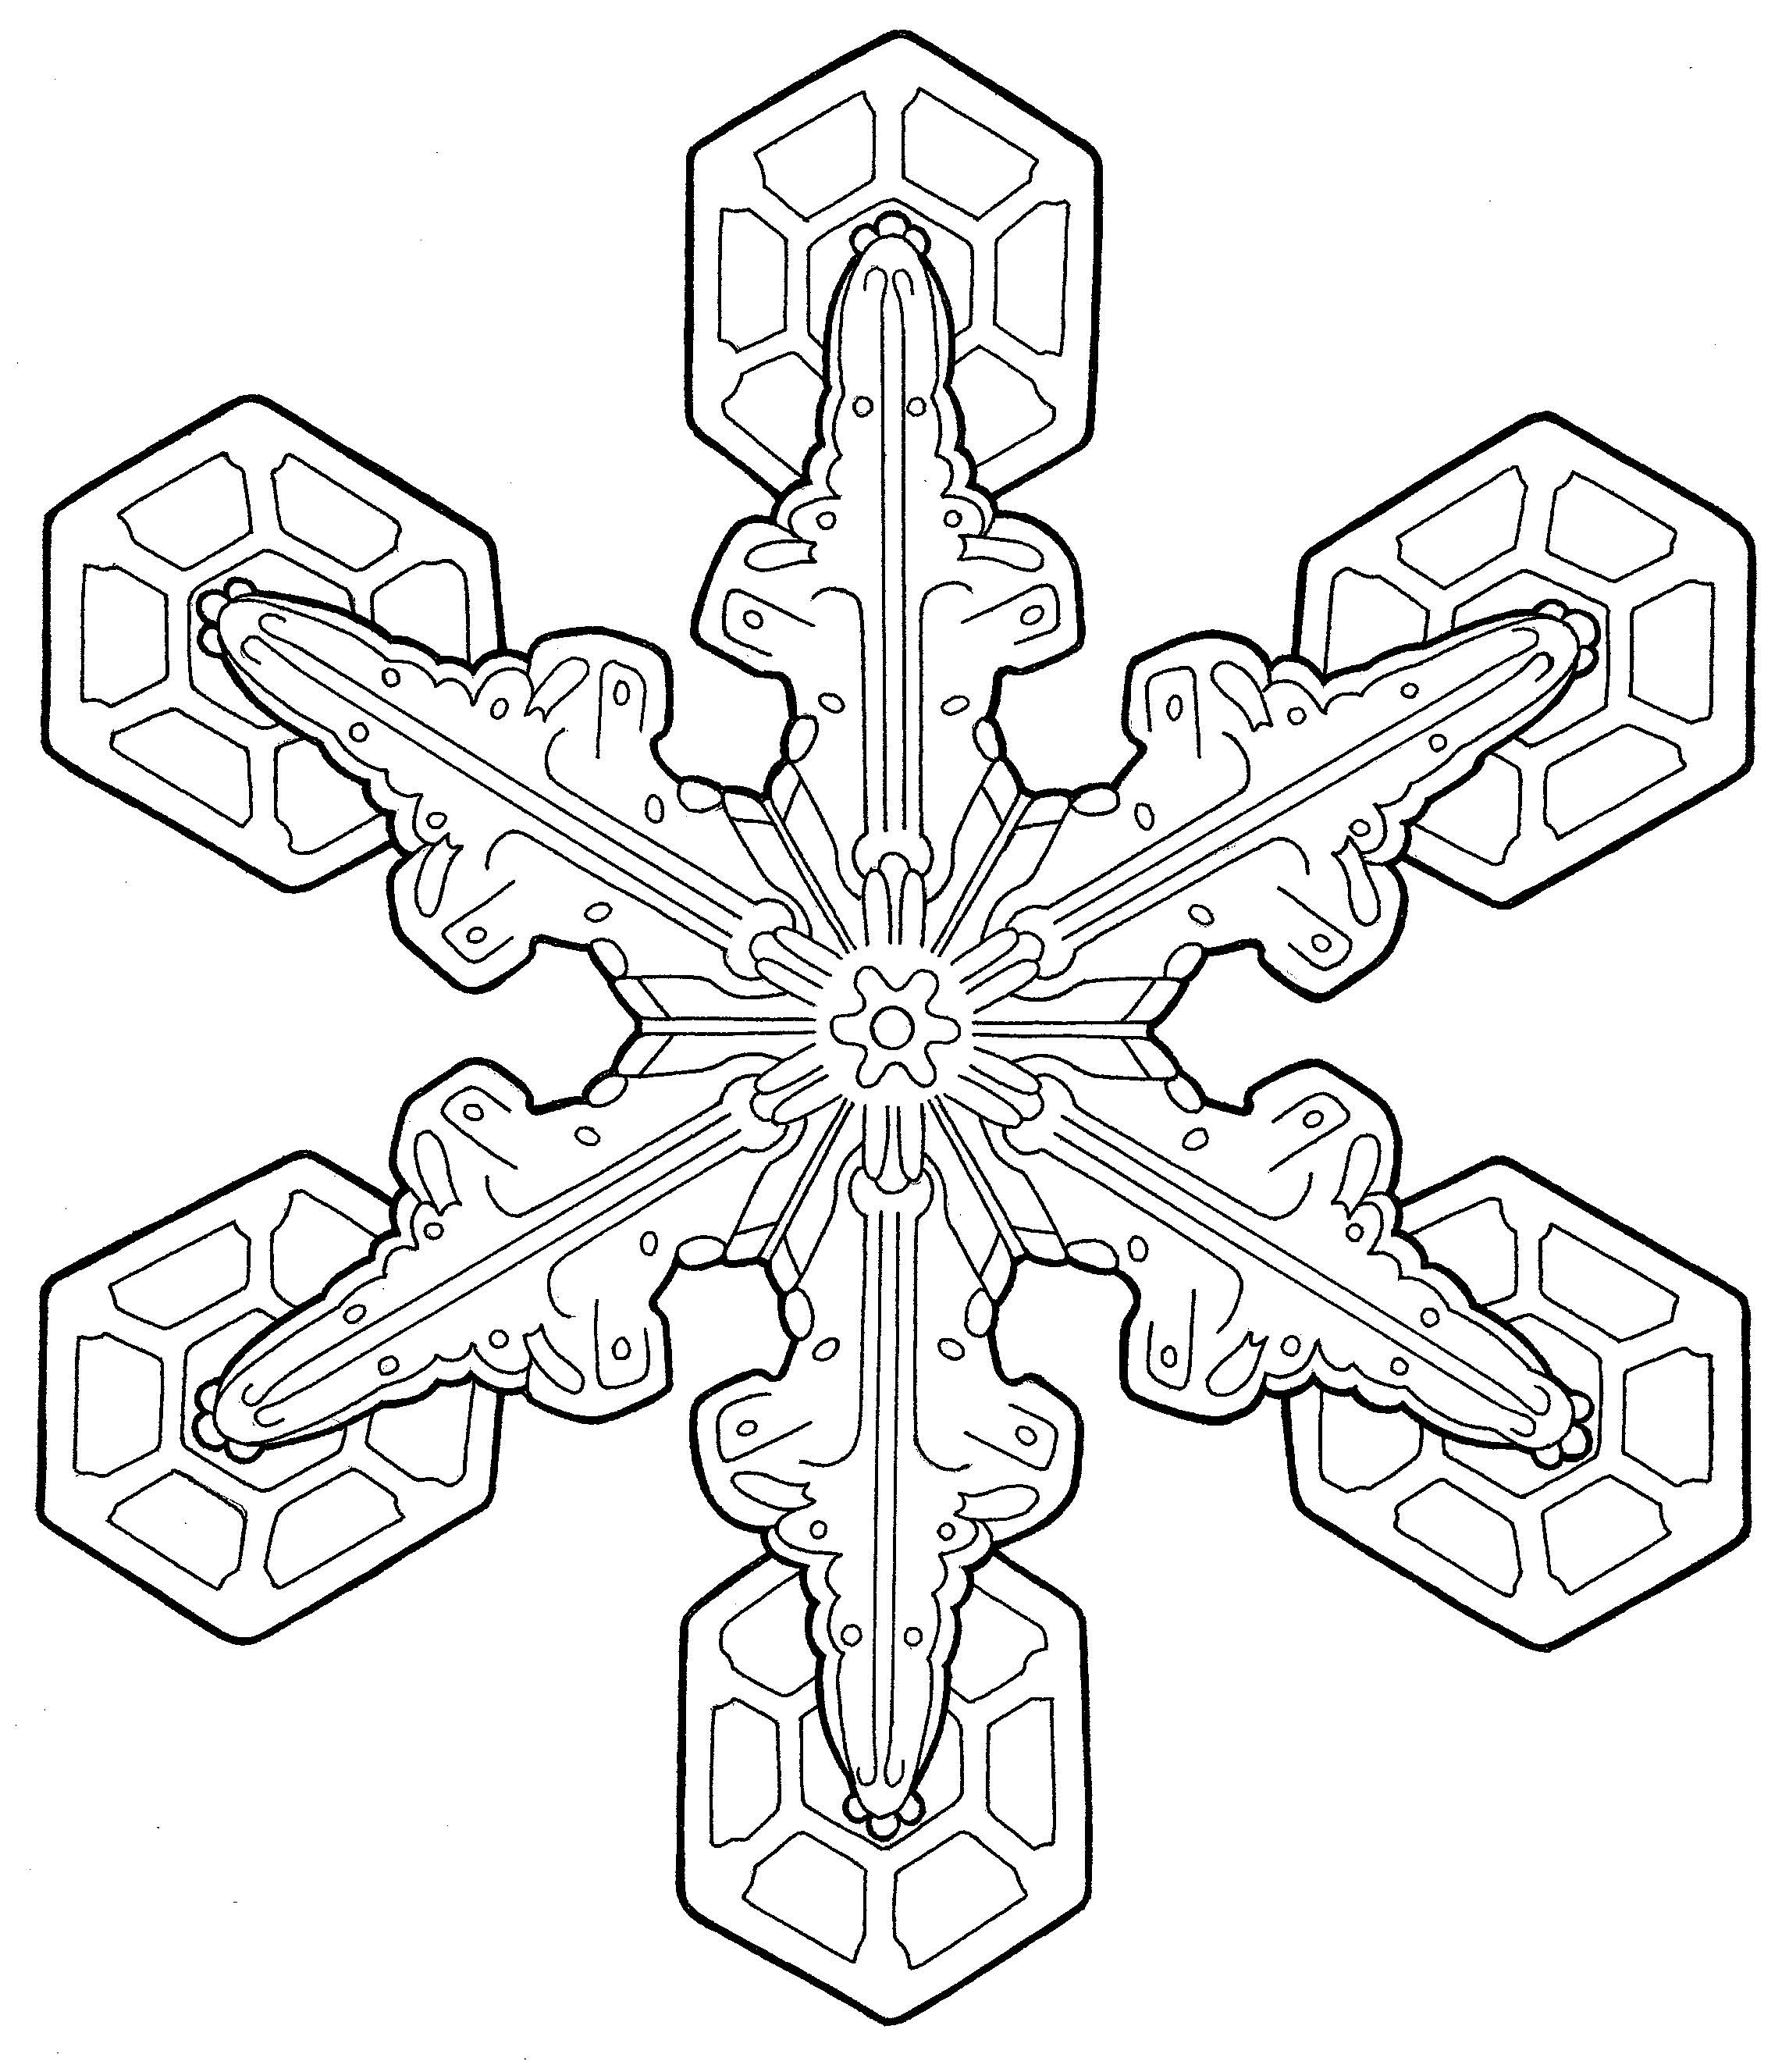 coloring sheet for adults serendipity adult coloring pages printable for sheet coloring adults